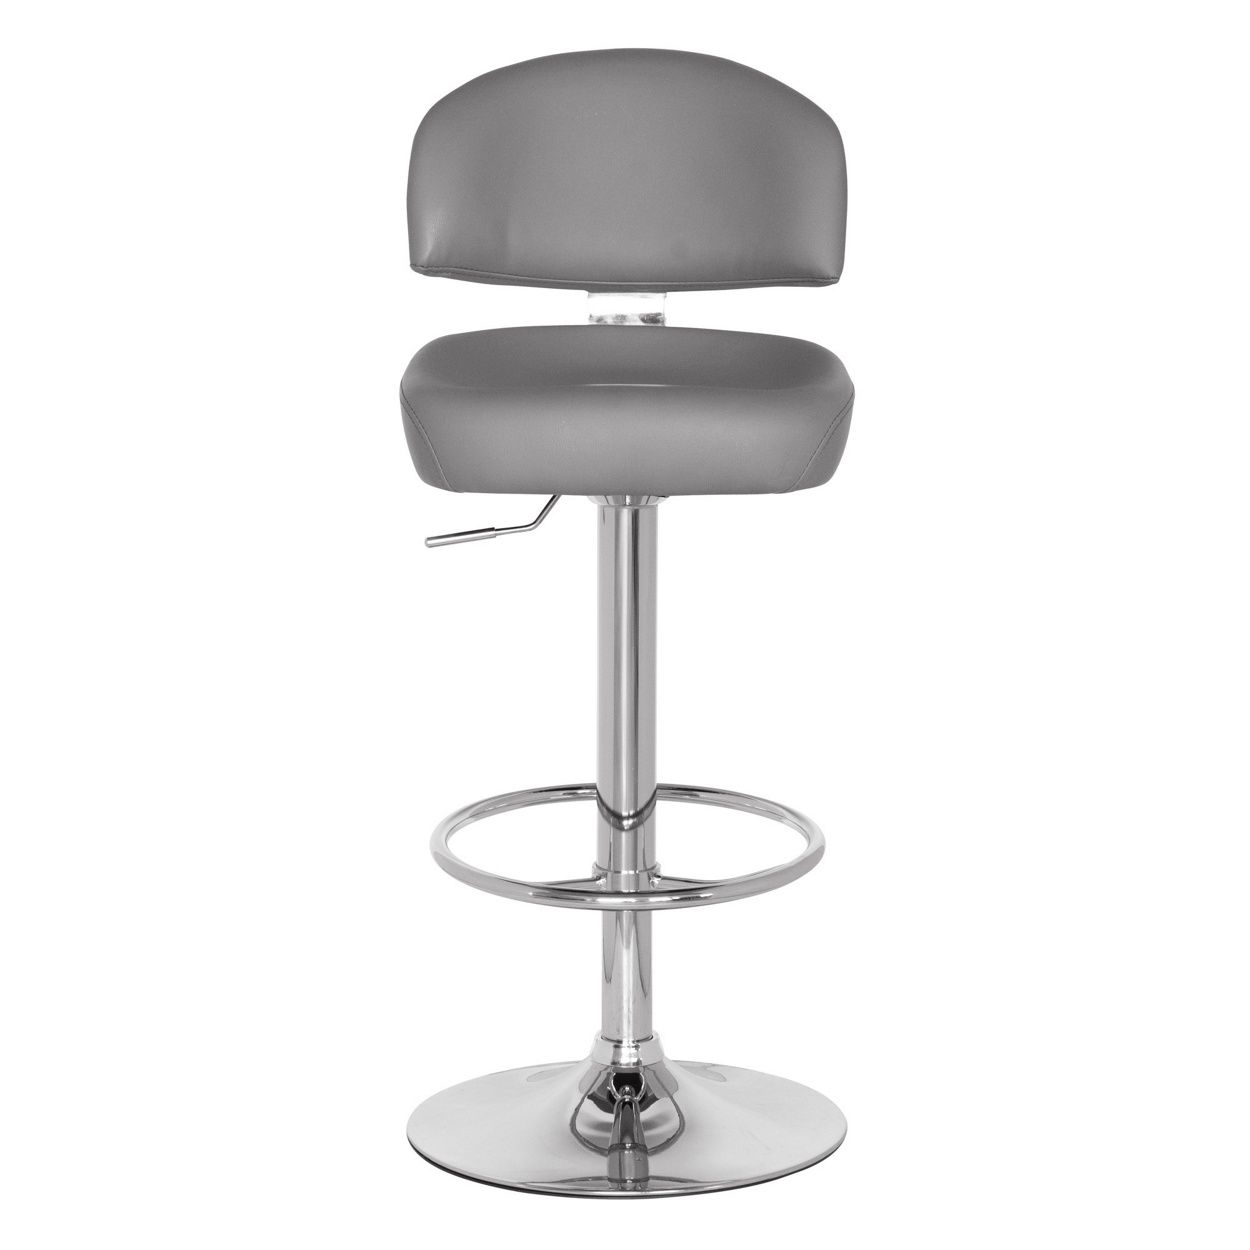 Marvelous Debenhams Grey Brooklyn Gas Lift Bar Stool Debenhams Gmtry Best Dining Table And Chair Ideas Images Gmtryco